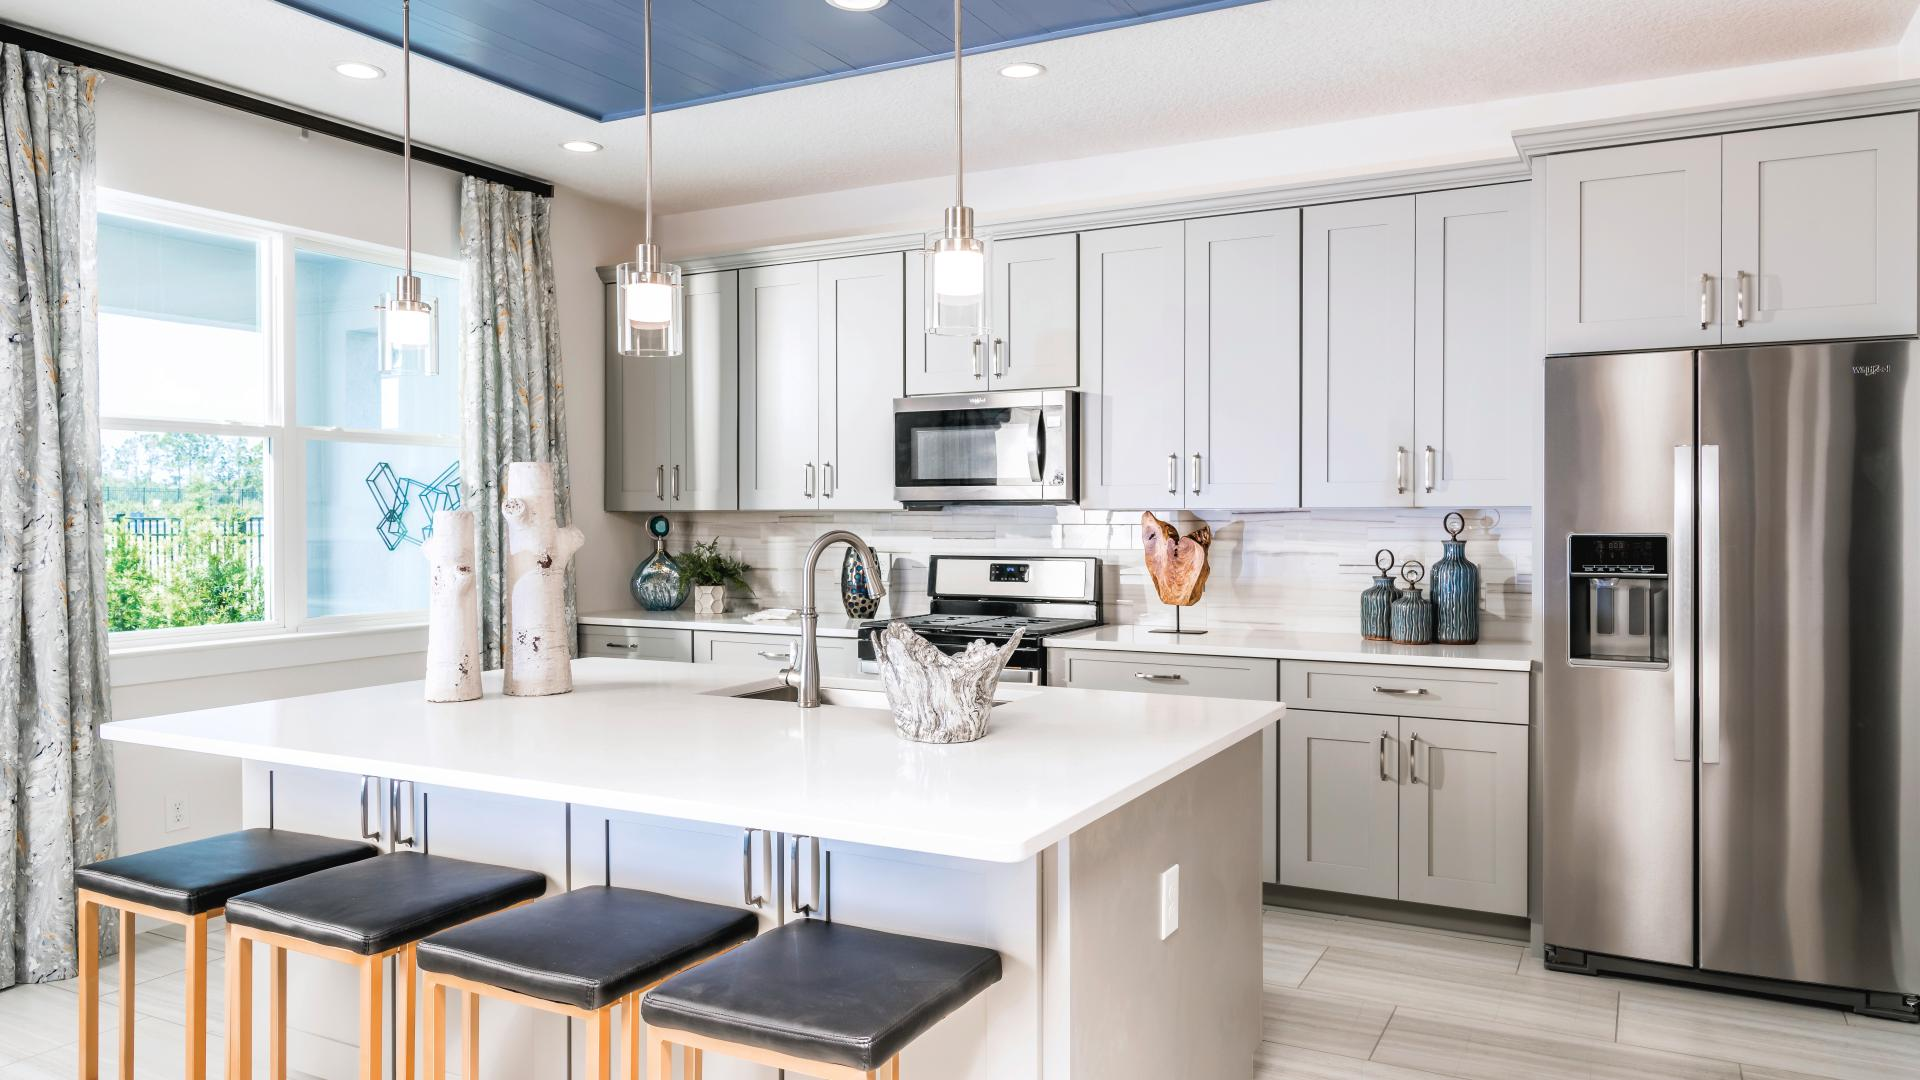 Spacious kitchens with center island